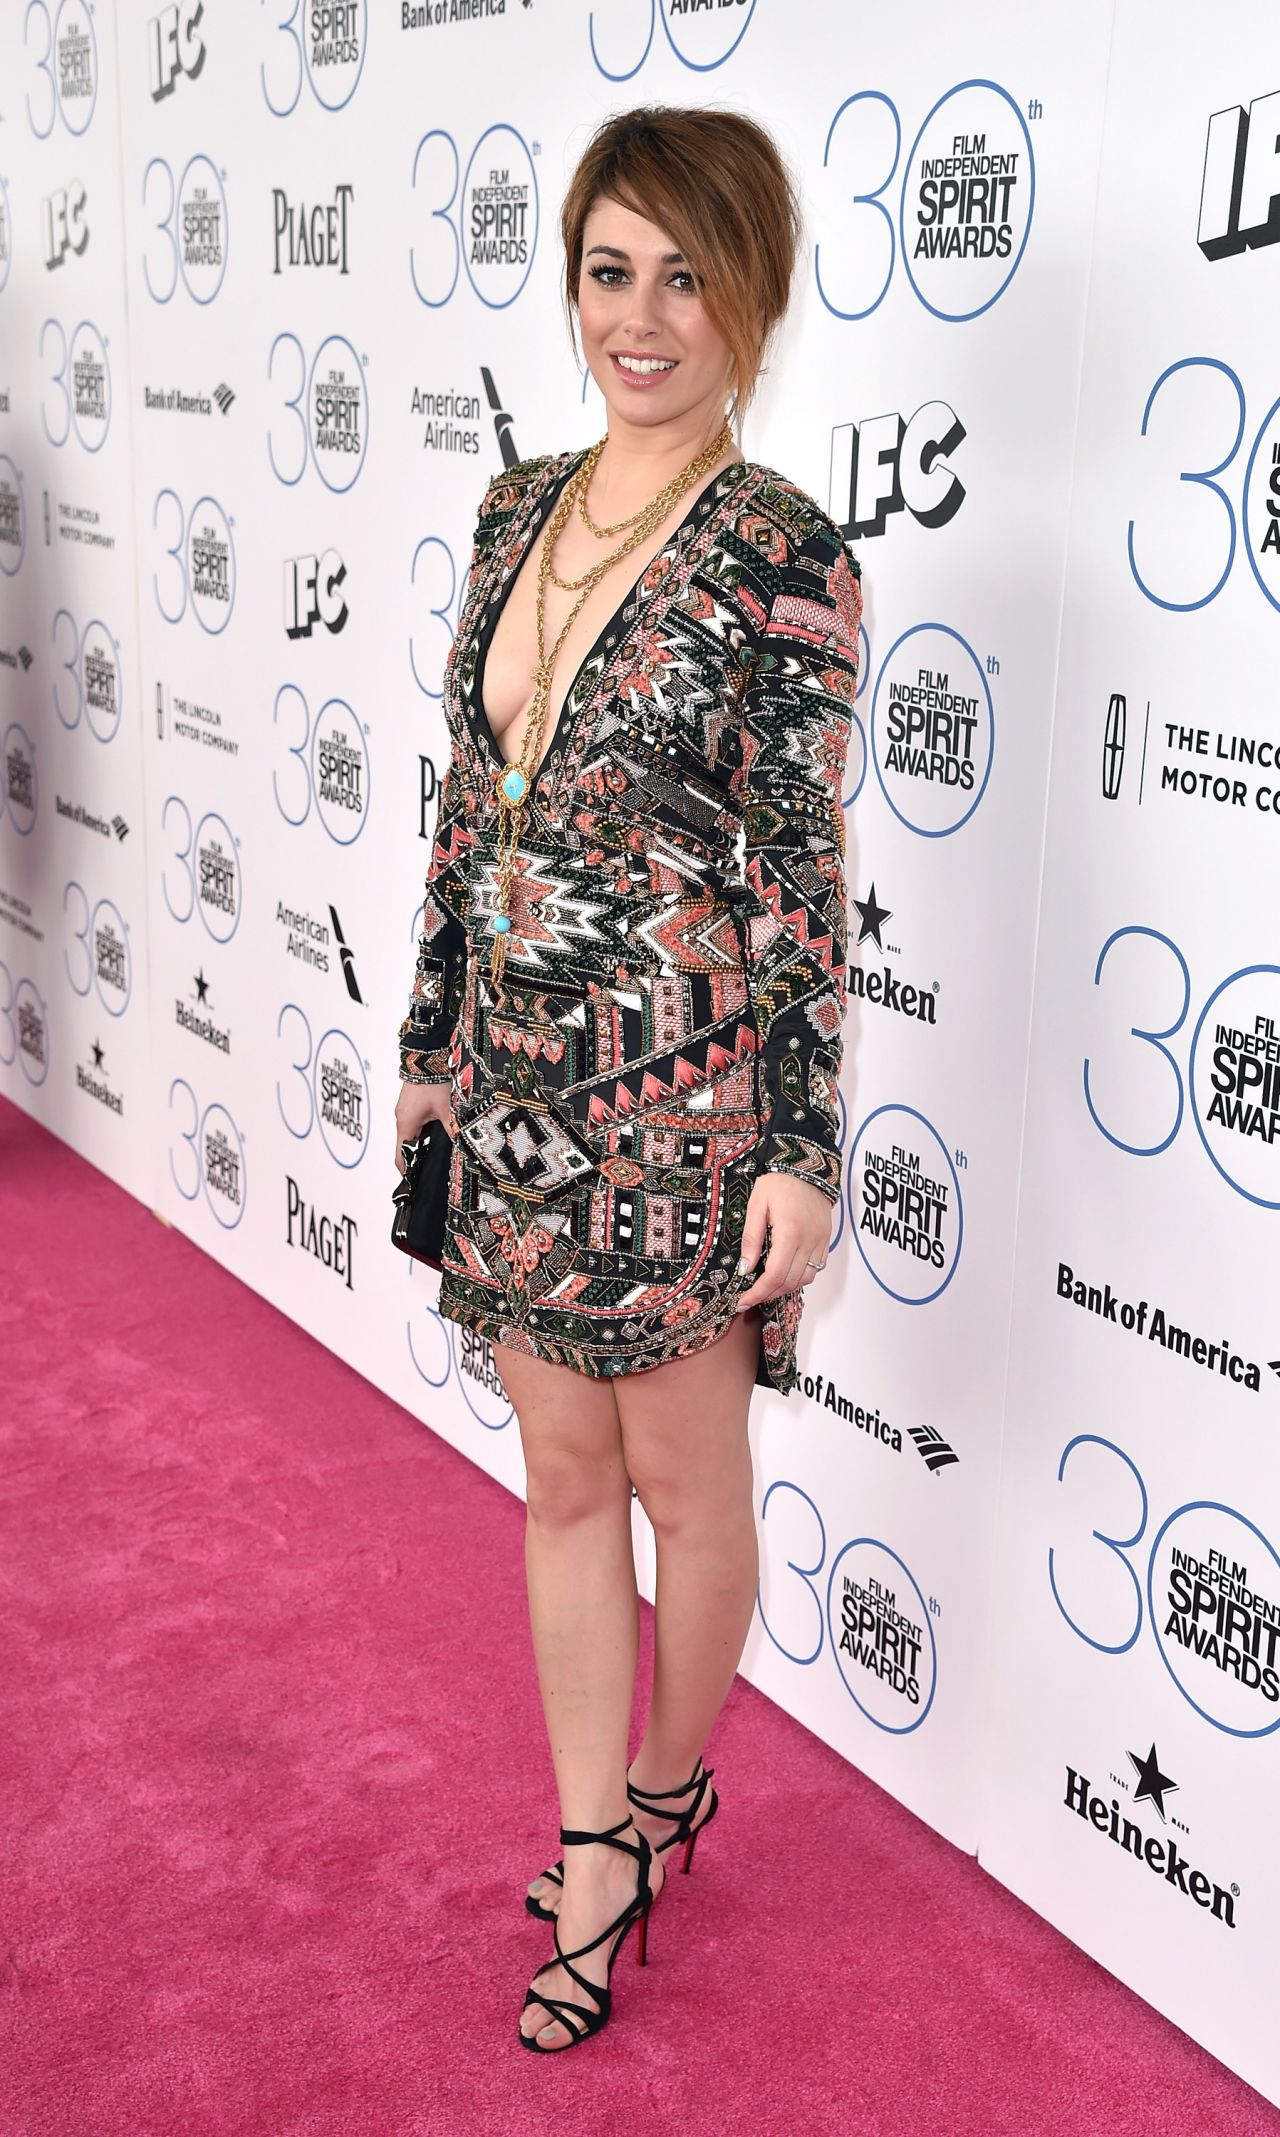 blanca-suarez-emilio-pucci-2015-film-independent-spirit-awards